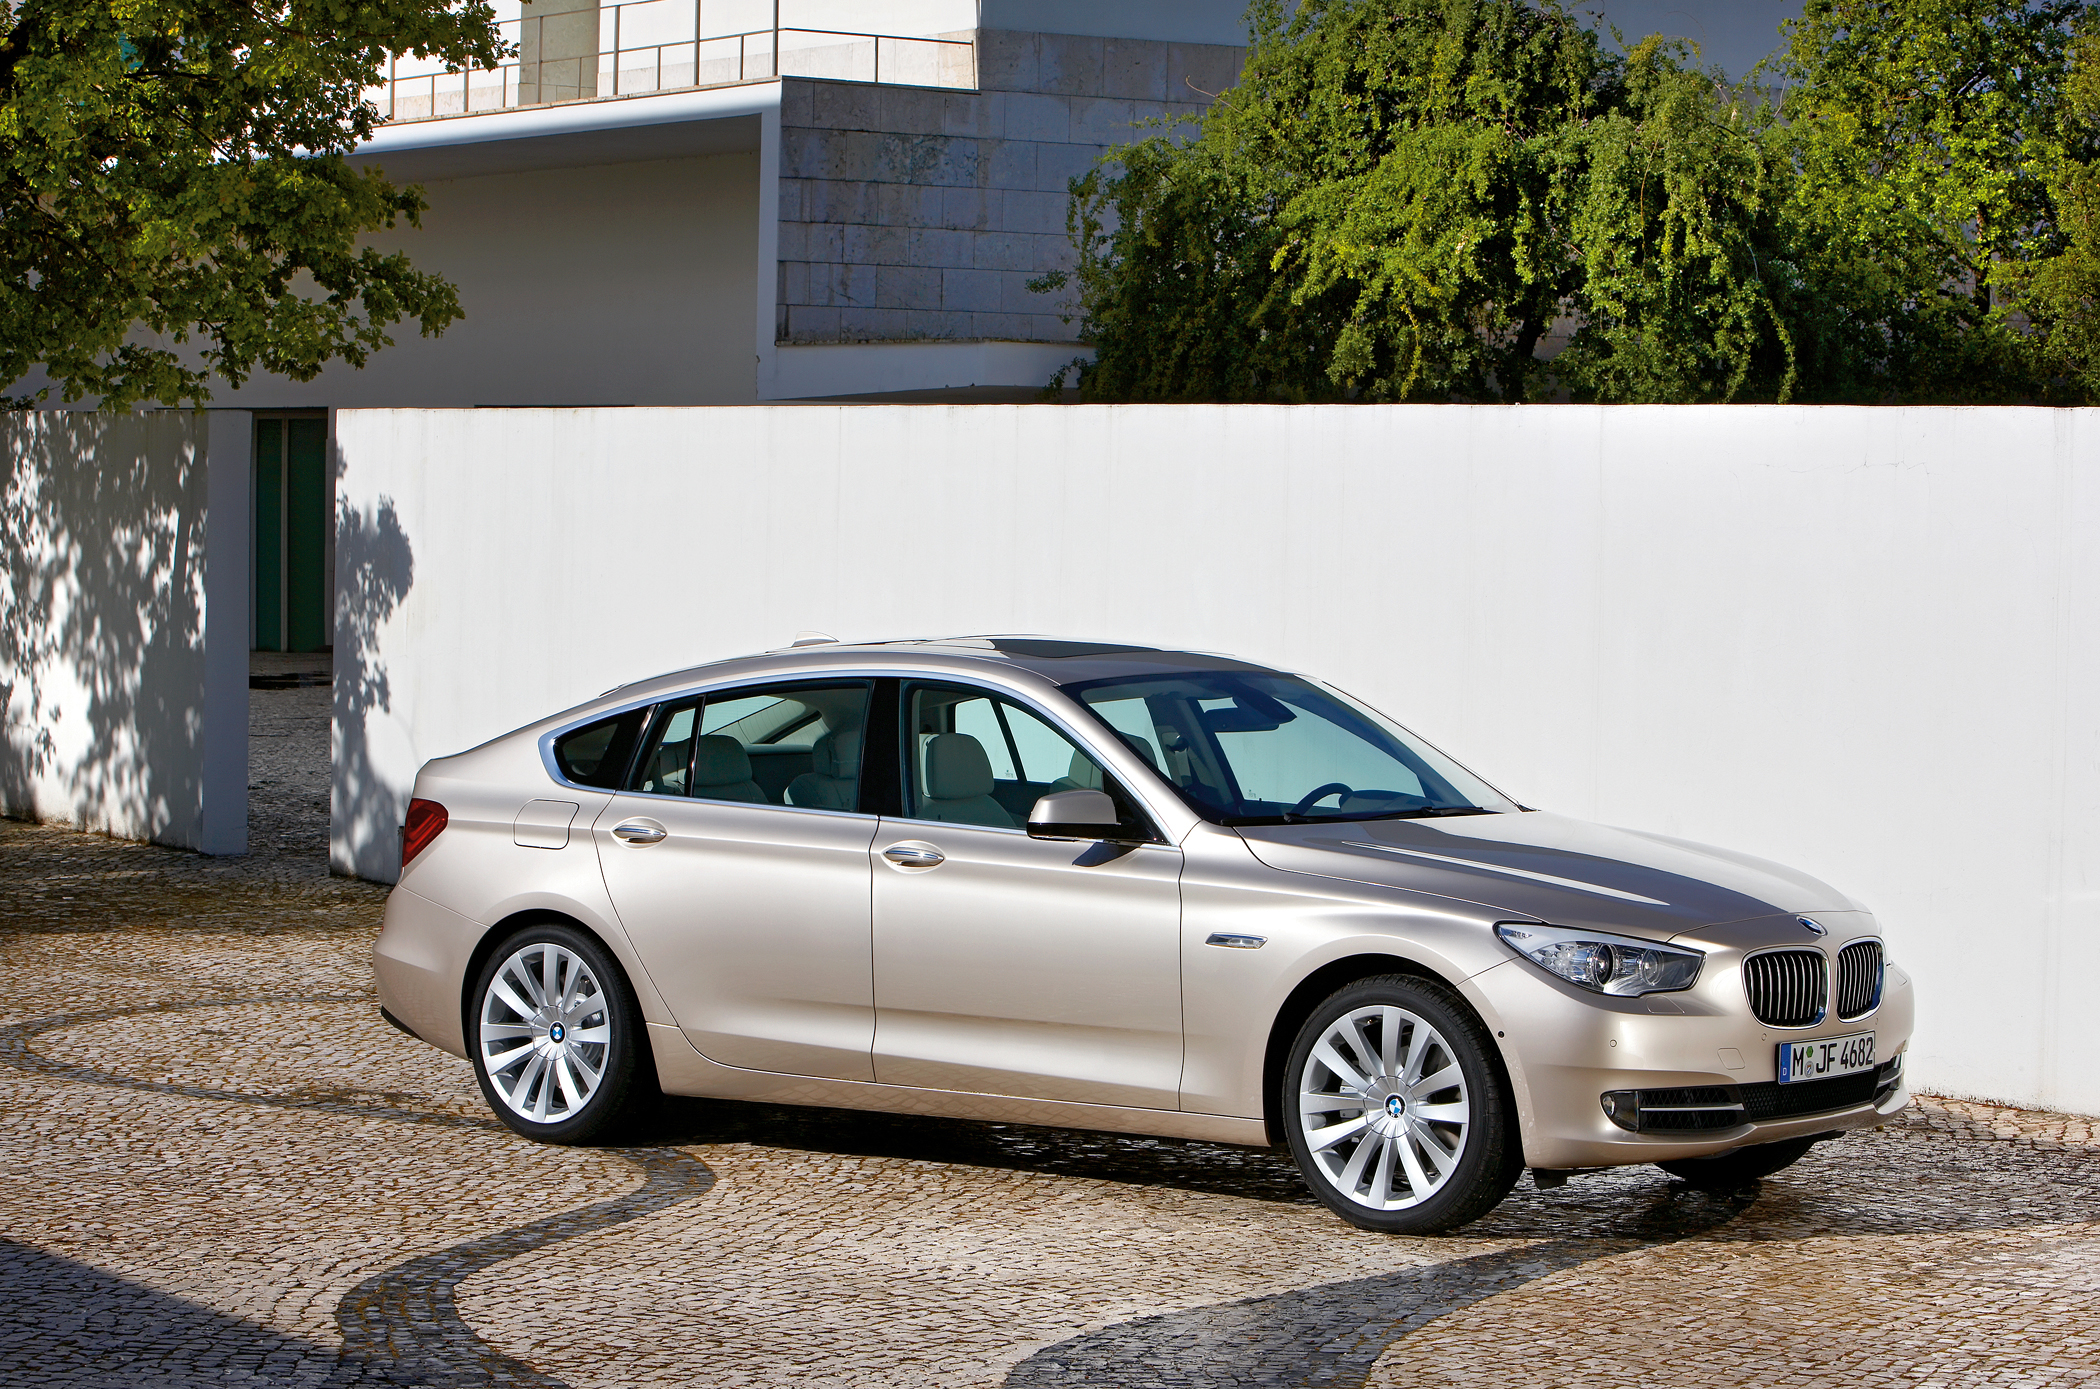 2010 Bmw 5 Series Gt A Blend Of Luxury Practicality Down The Well Todays Gran Turismo Or Carries On This Definition With Style Comfort And Performance